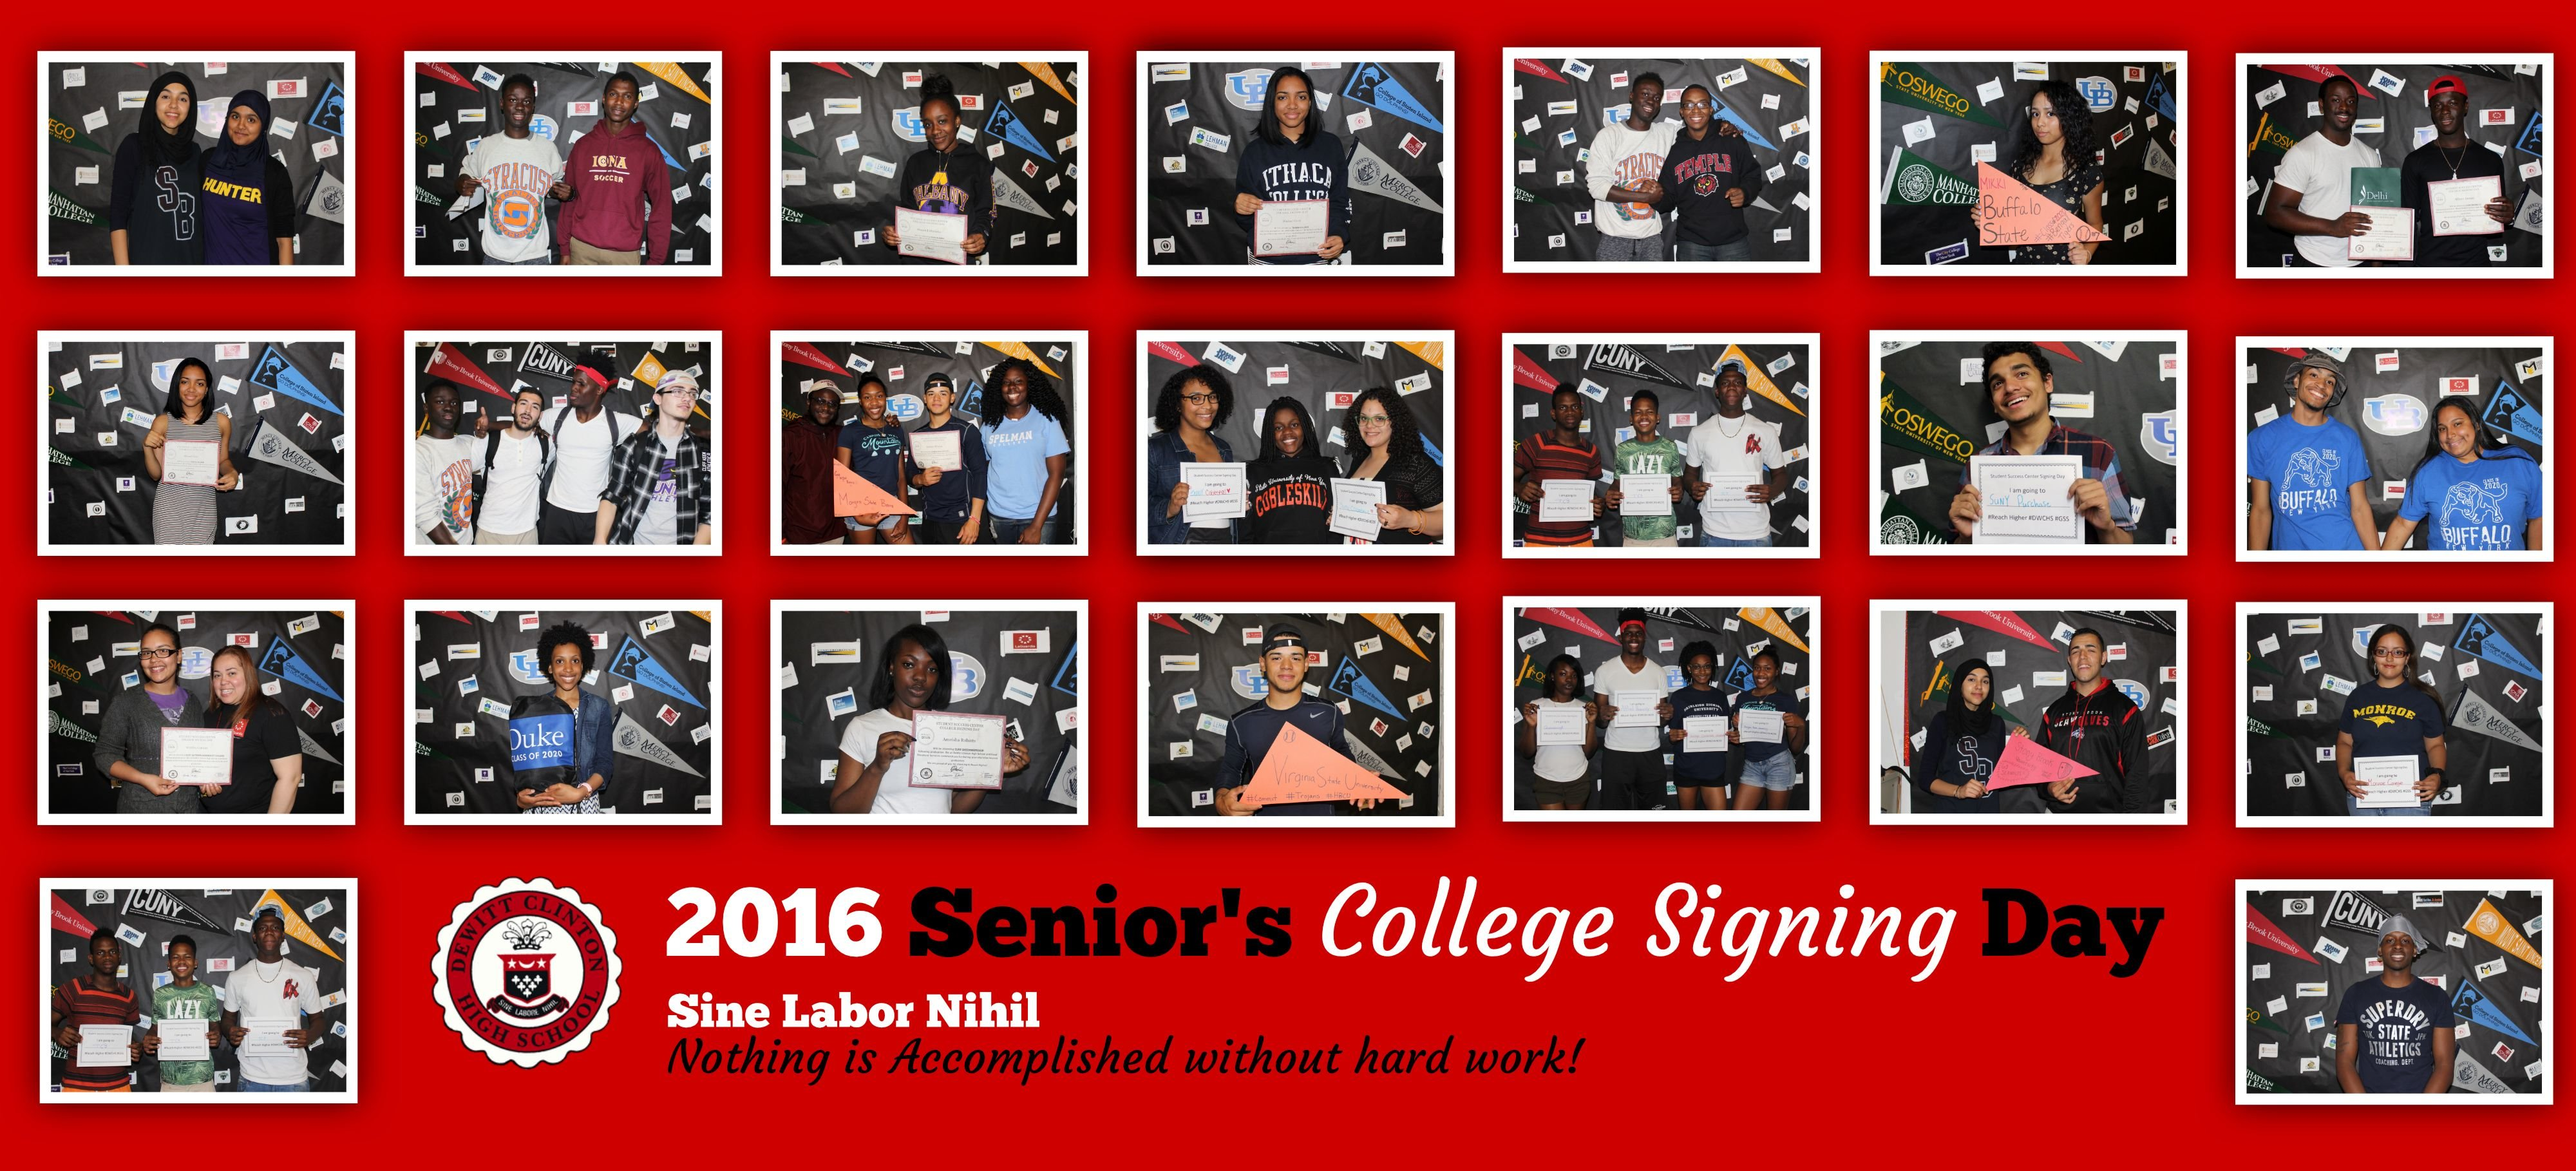 Senior's College Signing Day at the Students Success Center